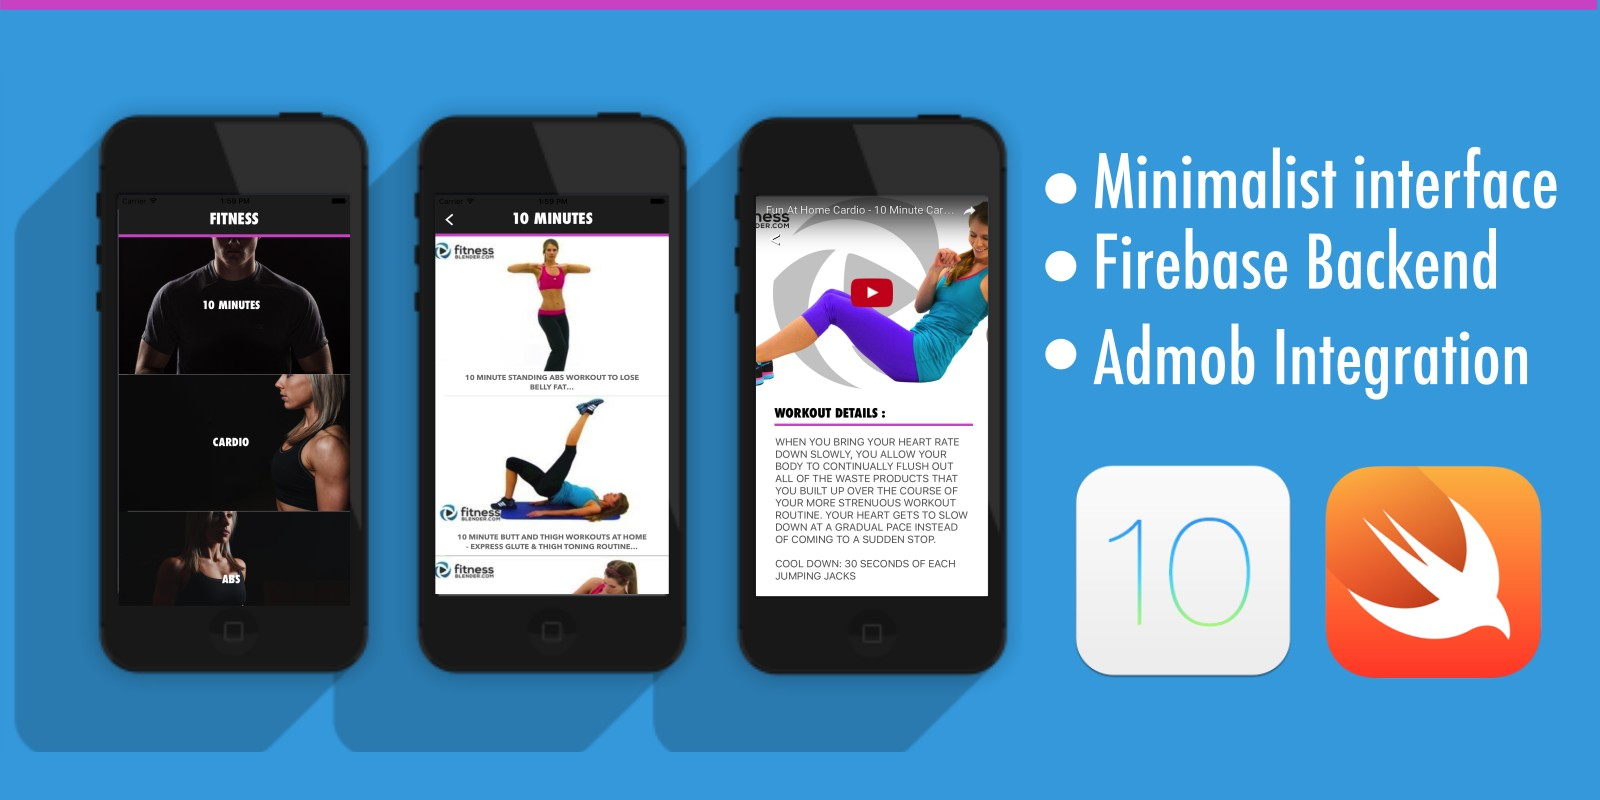 Fitness App - iOS Source Code With Firebase Backen